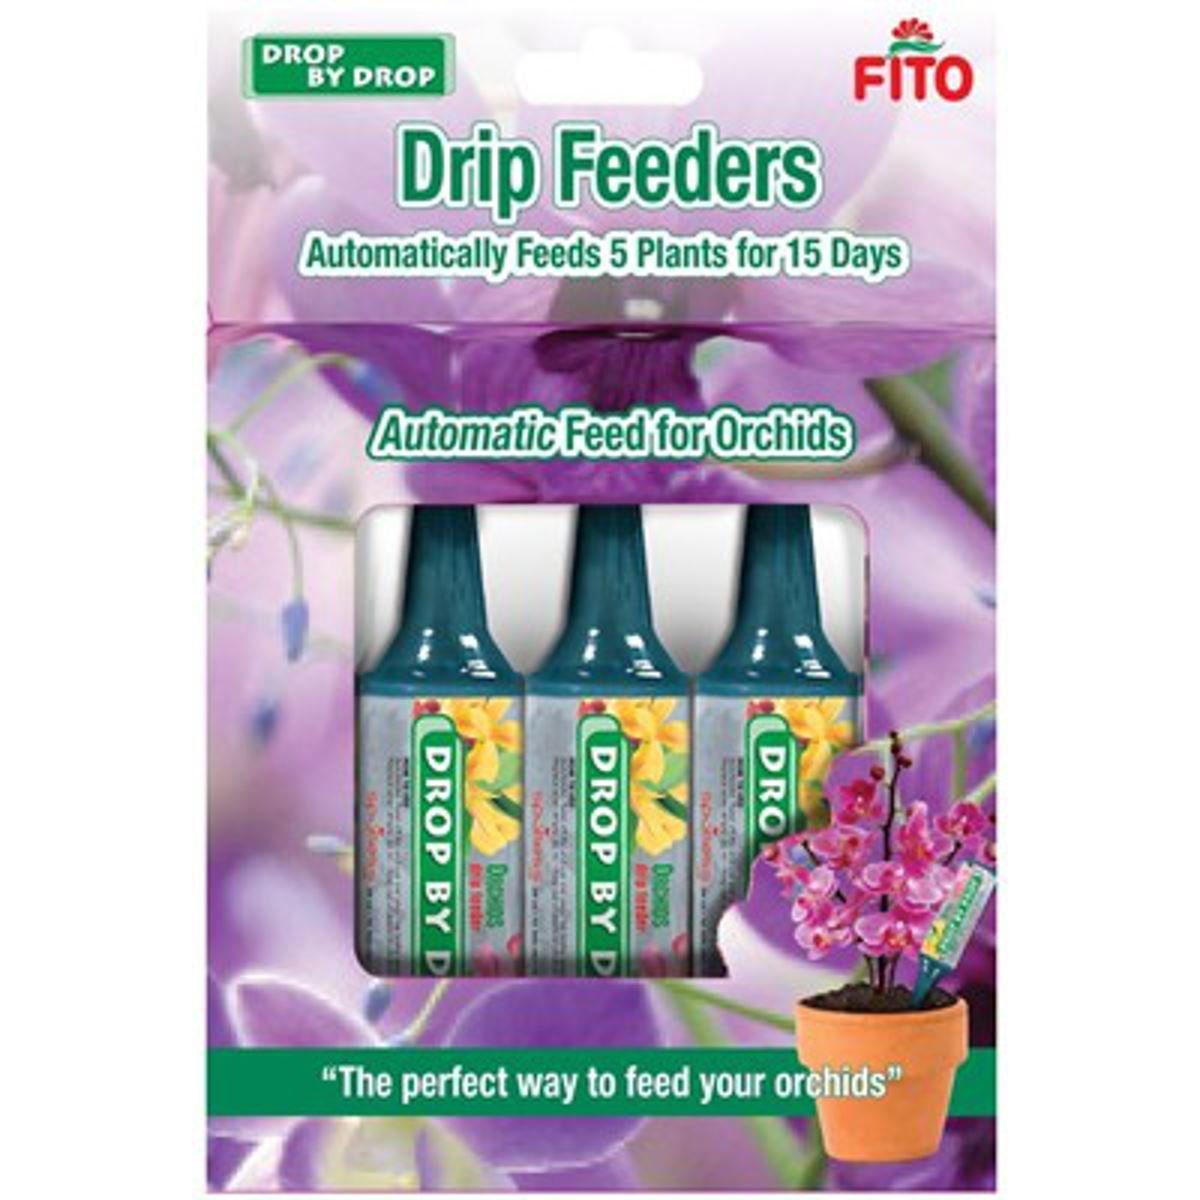 Fito Orchid Drop By Drop Drip Feeders Pack of 5 (5 x 32ml) Feeders